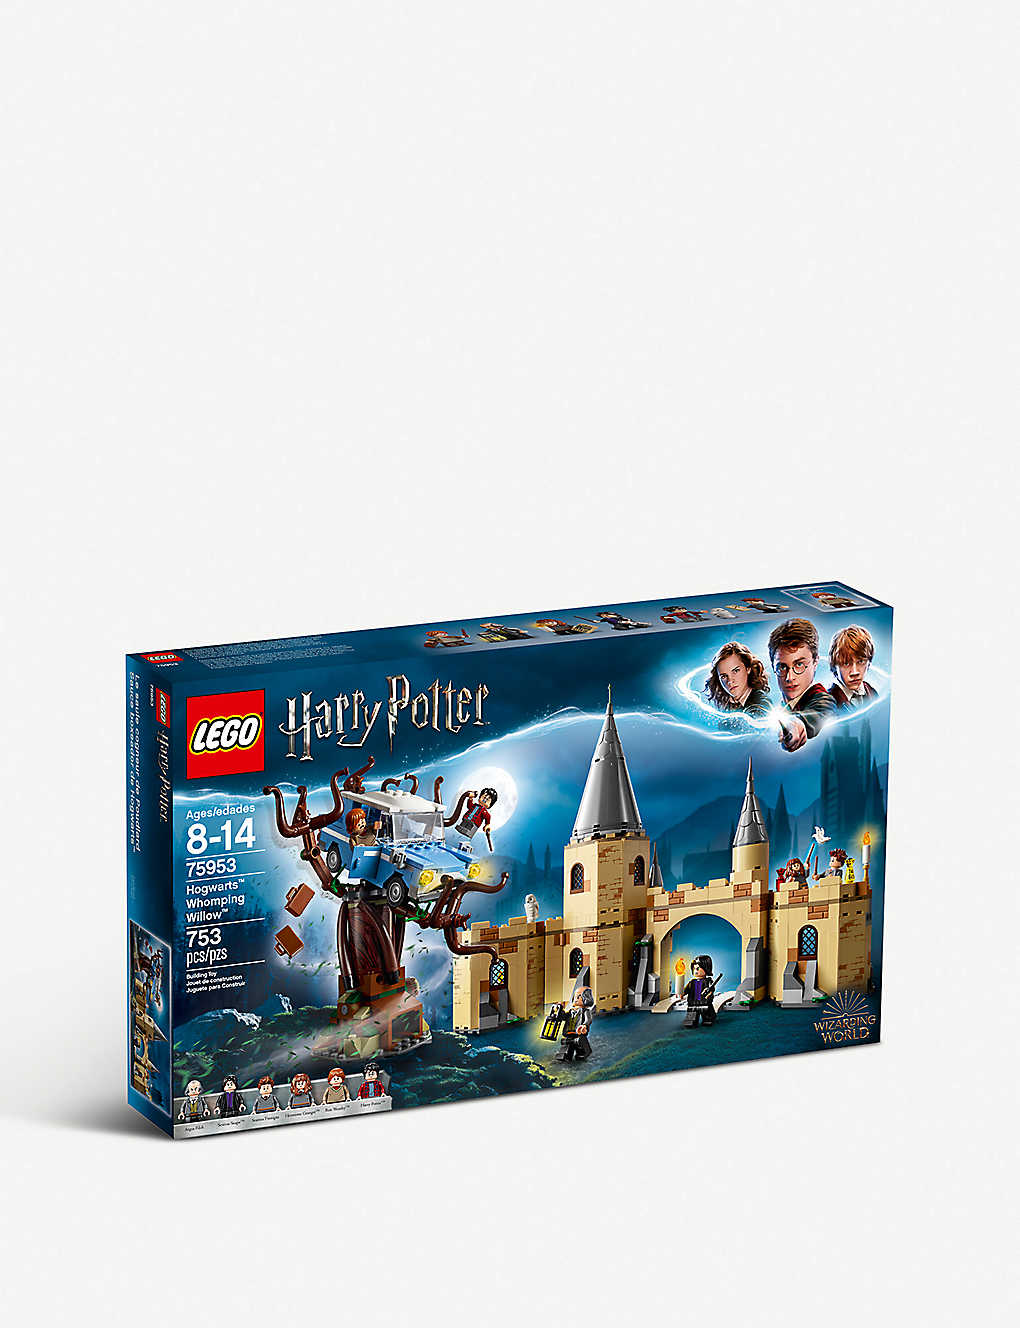 New Lego Harry Potter Hogwarts Whomping Willow Building Set 75953 NEW